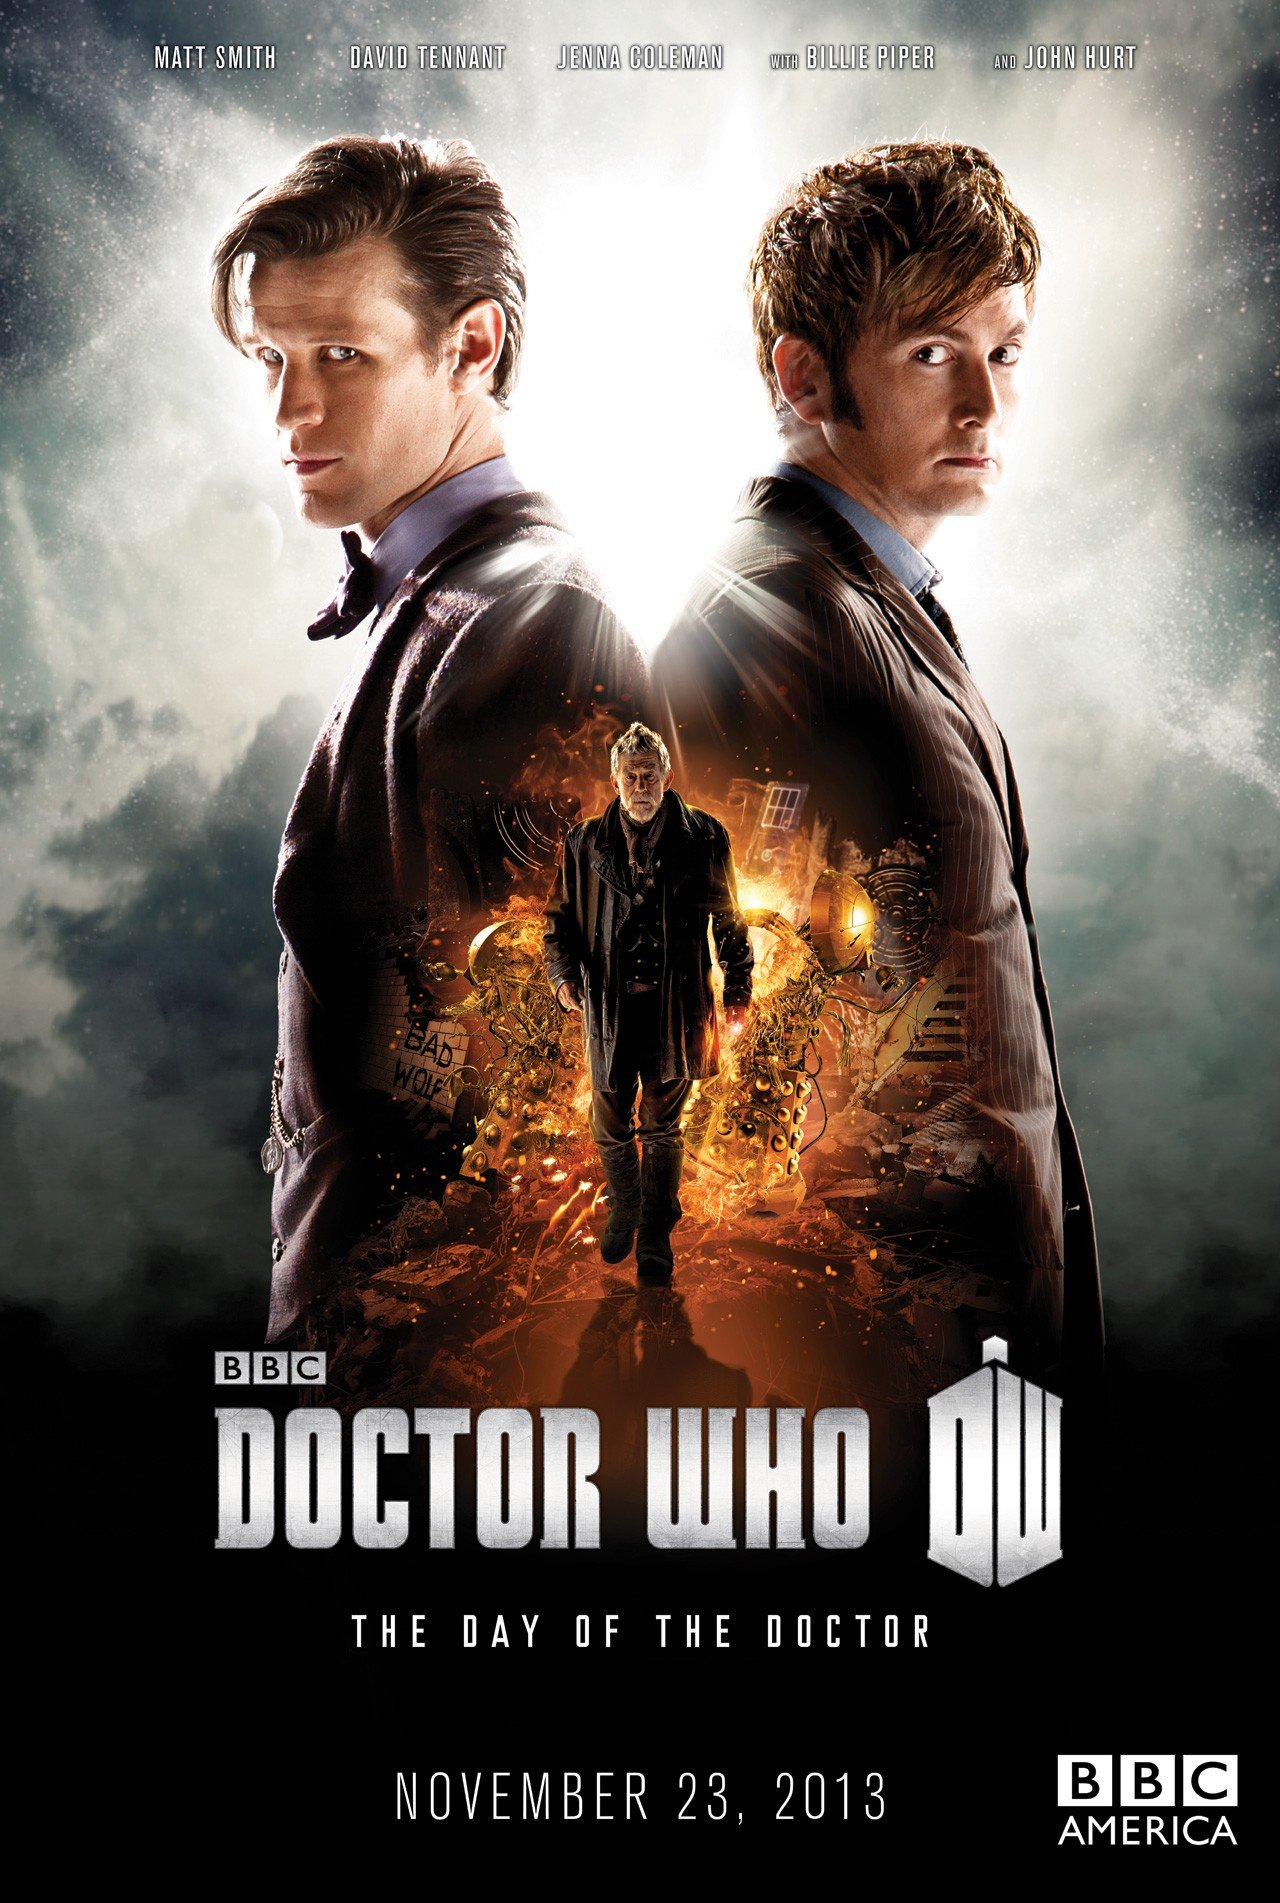 Doctor Who: 2013 The Day of the Doctor 神秘博士50周年特别篇